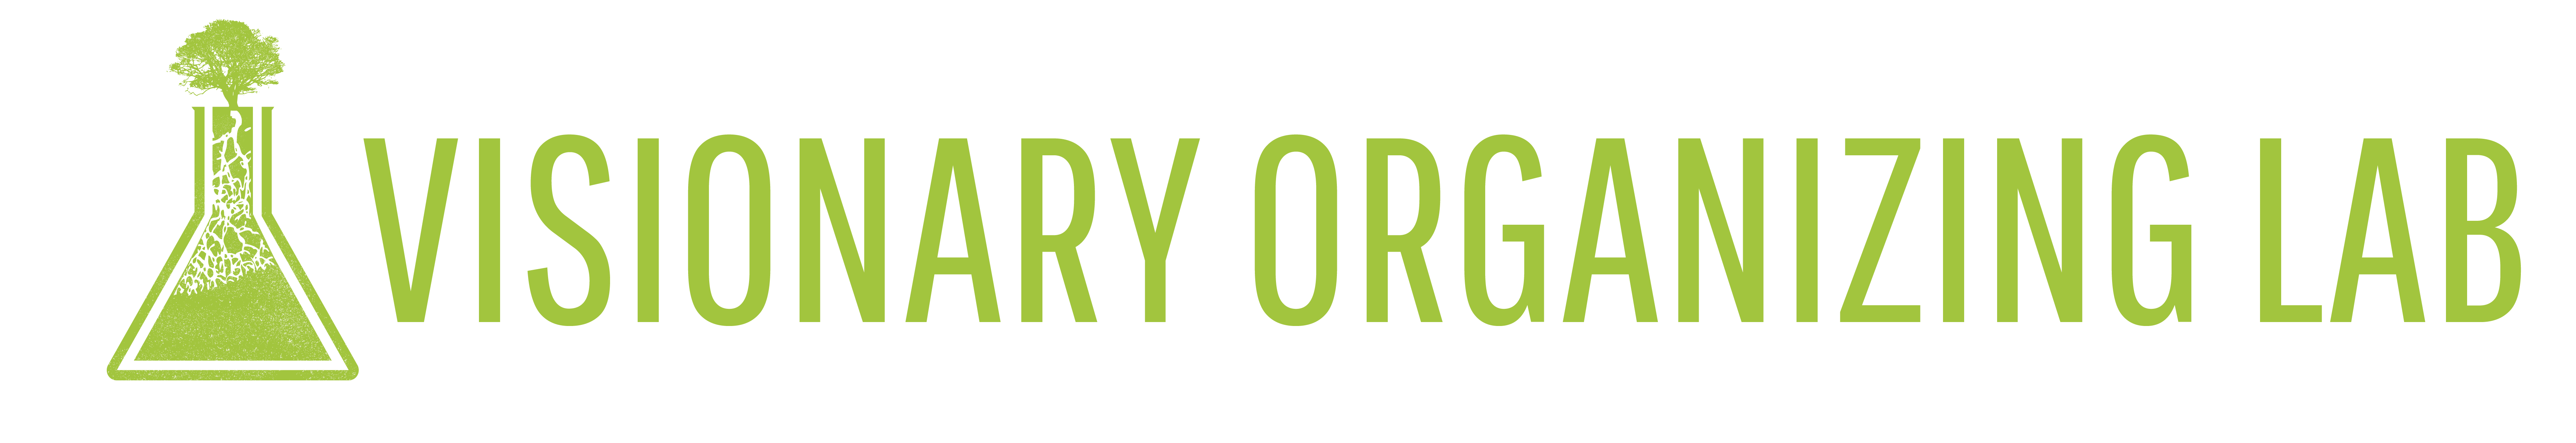 Visionary Organizing Lab